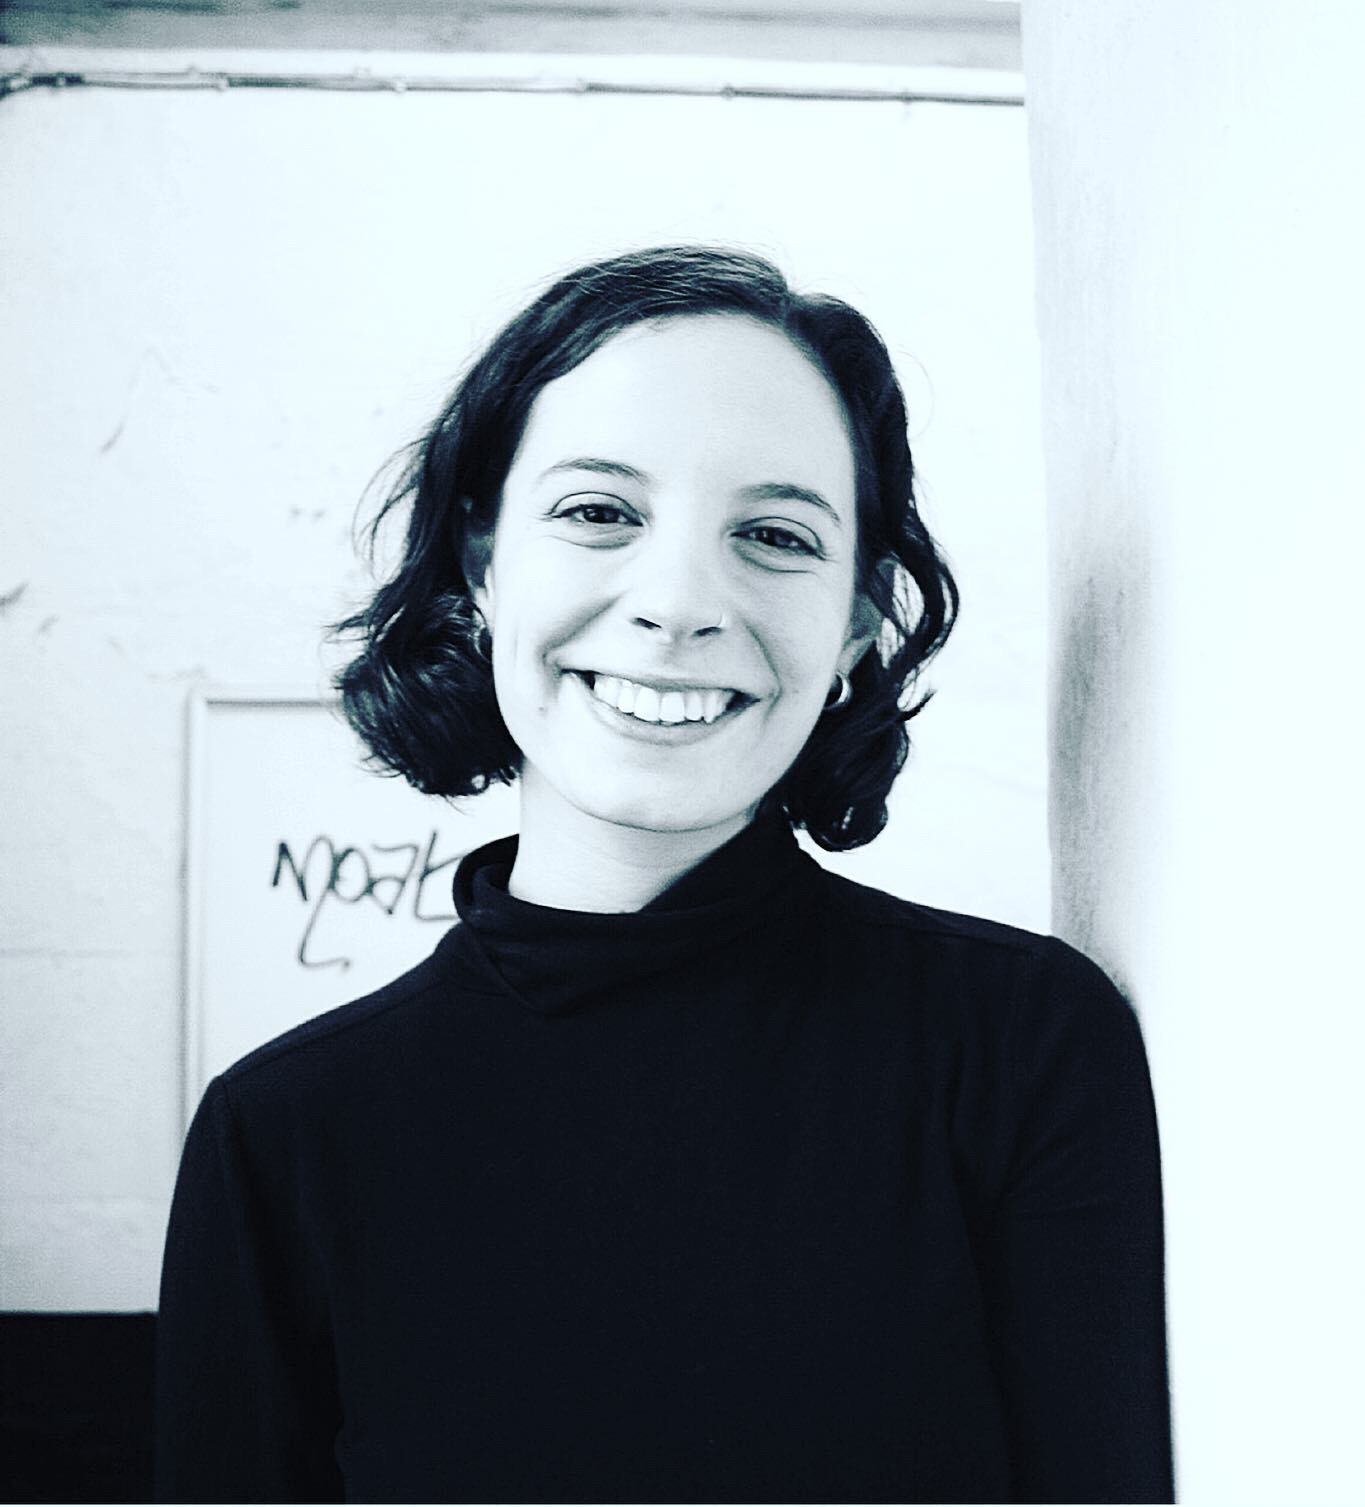 Black and white headshot of Jenny Crisp. She is smiling at the camera, and wearing her hair in a short bob.